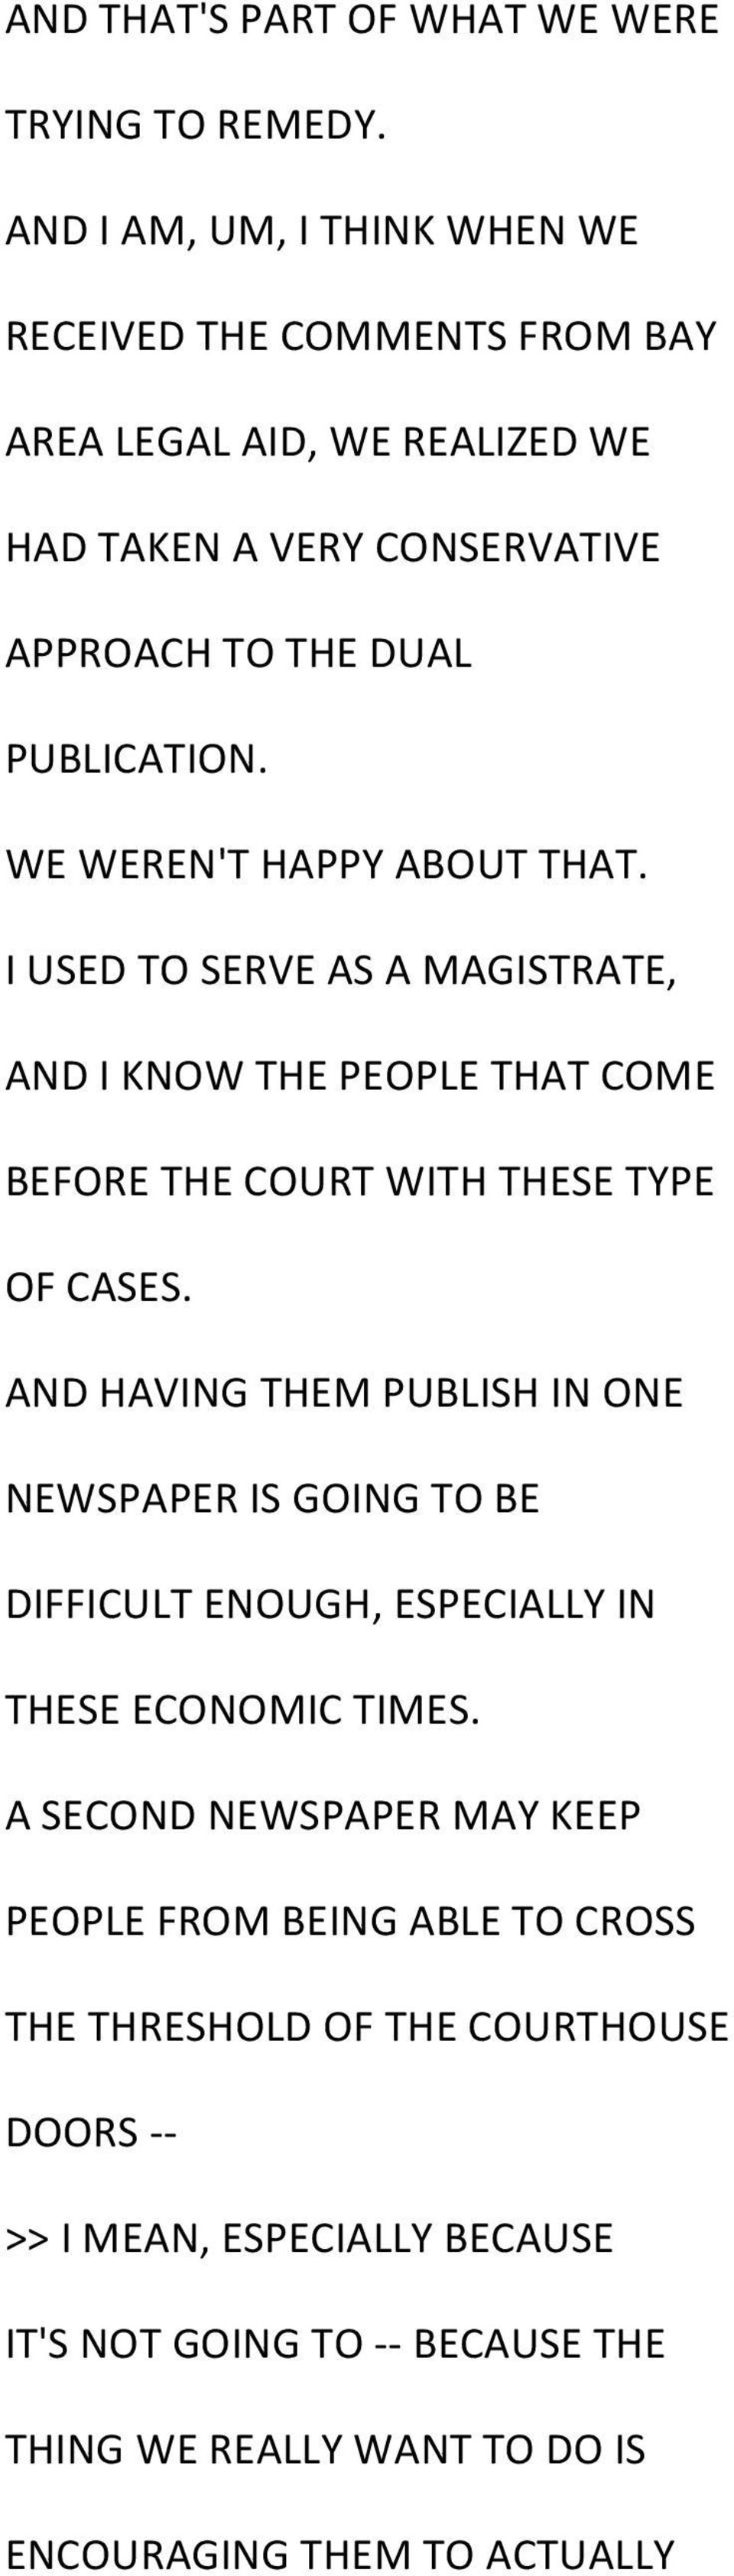 WE WEREN'T HAPPY ABOUT THAT. I USED TO SERVE AS A MAGISTRATE, AND I KNOW THE PEOPLE THAT COME BEFORE THE COURT WITH THESE TYPE OF CASES.